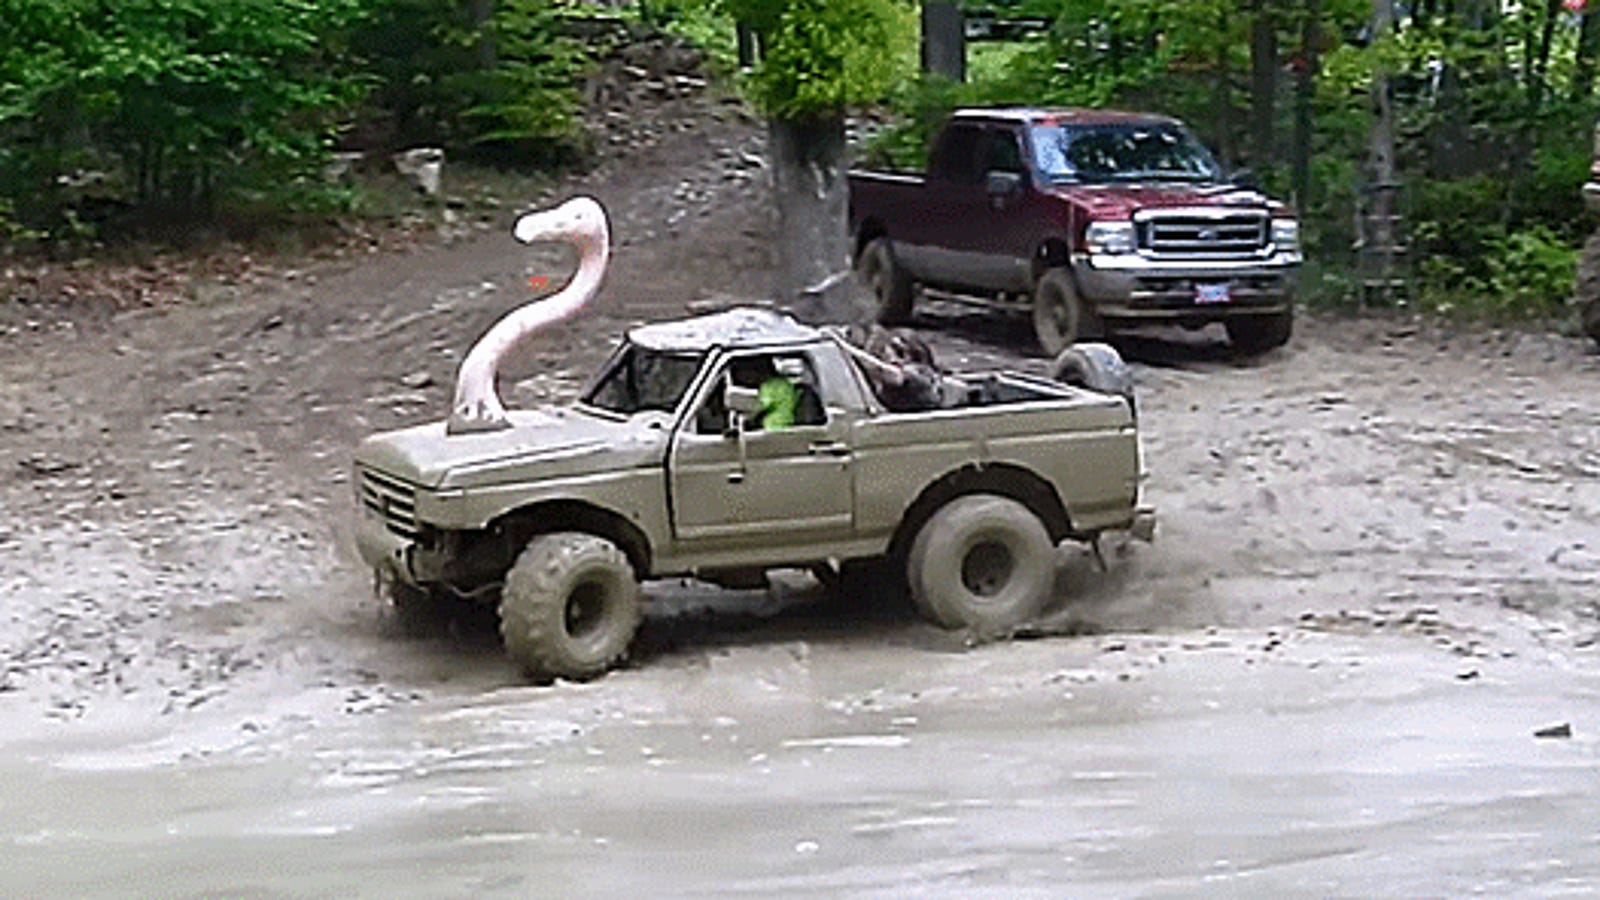 Bxajrizq Uerytkhw Ql on Ford Ranger Mudding